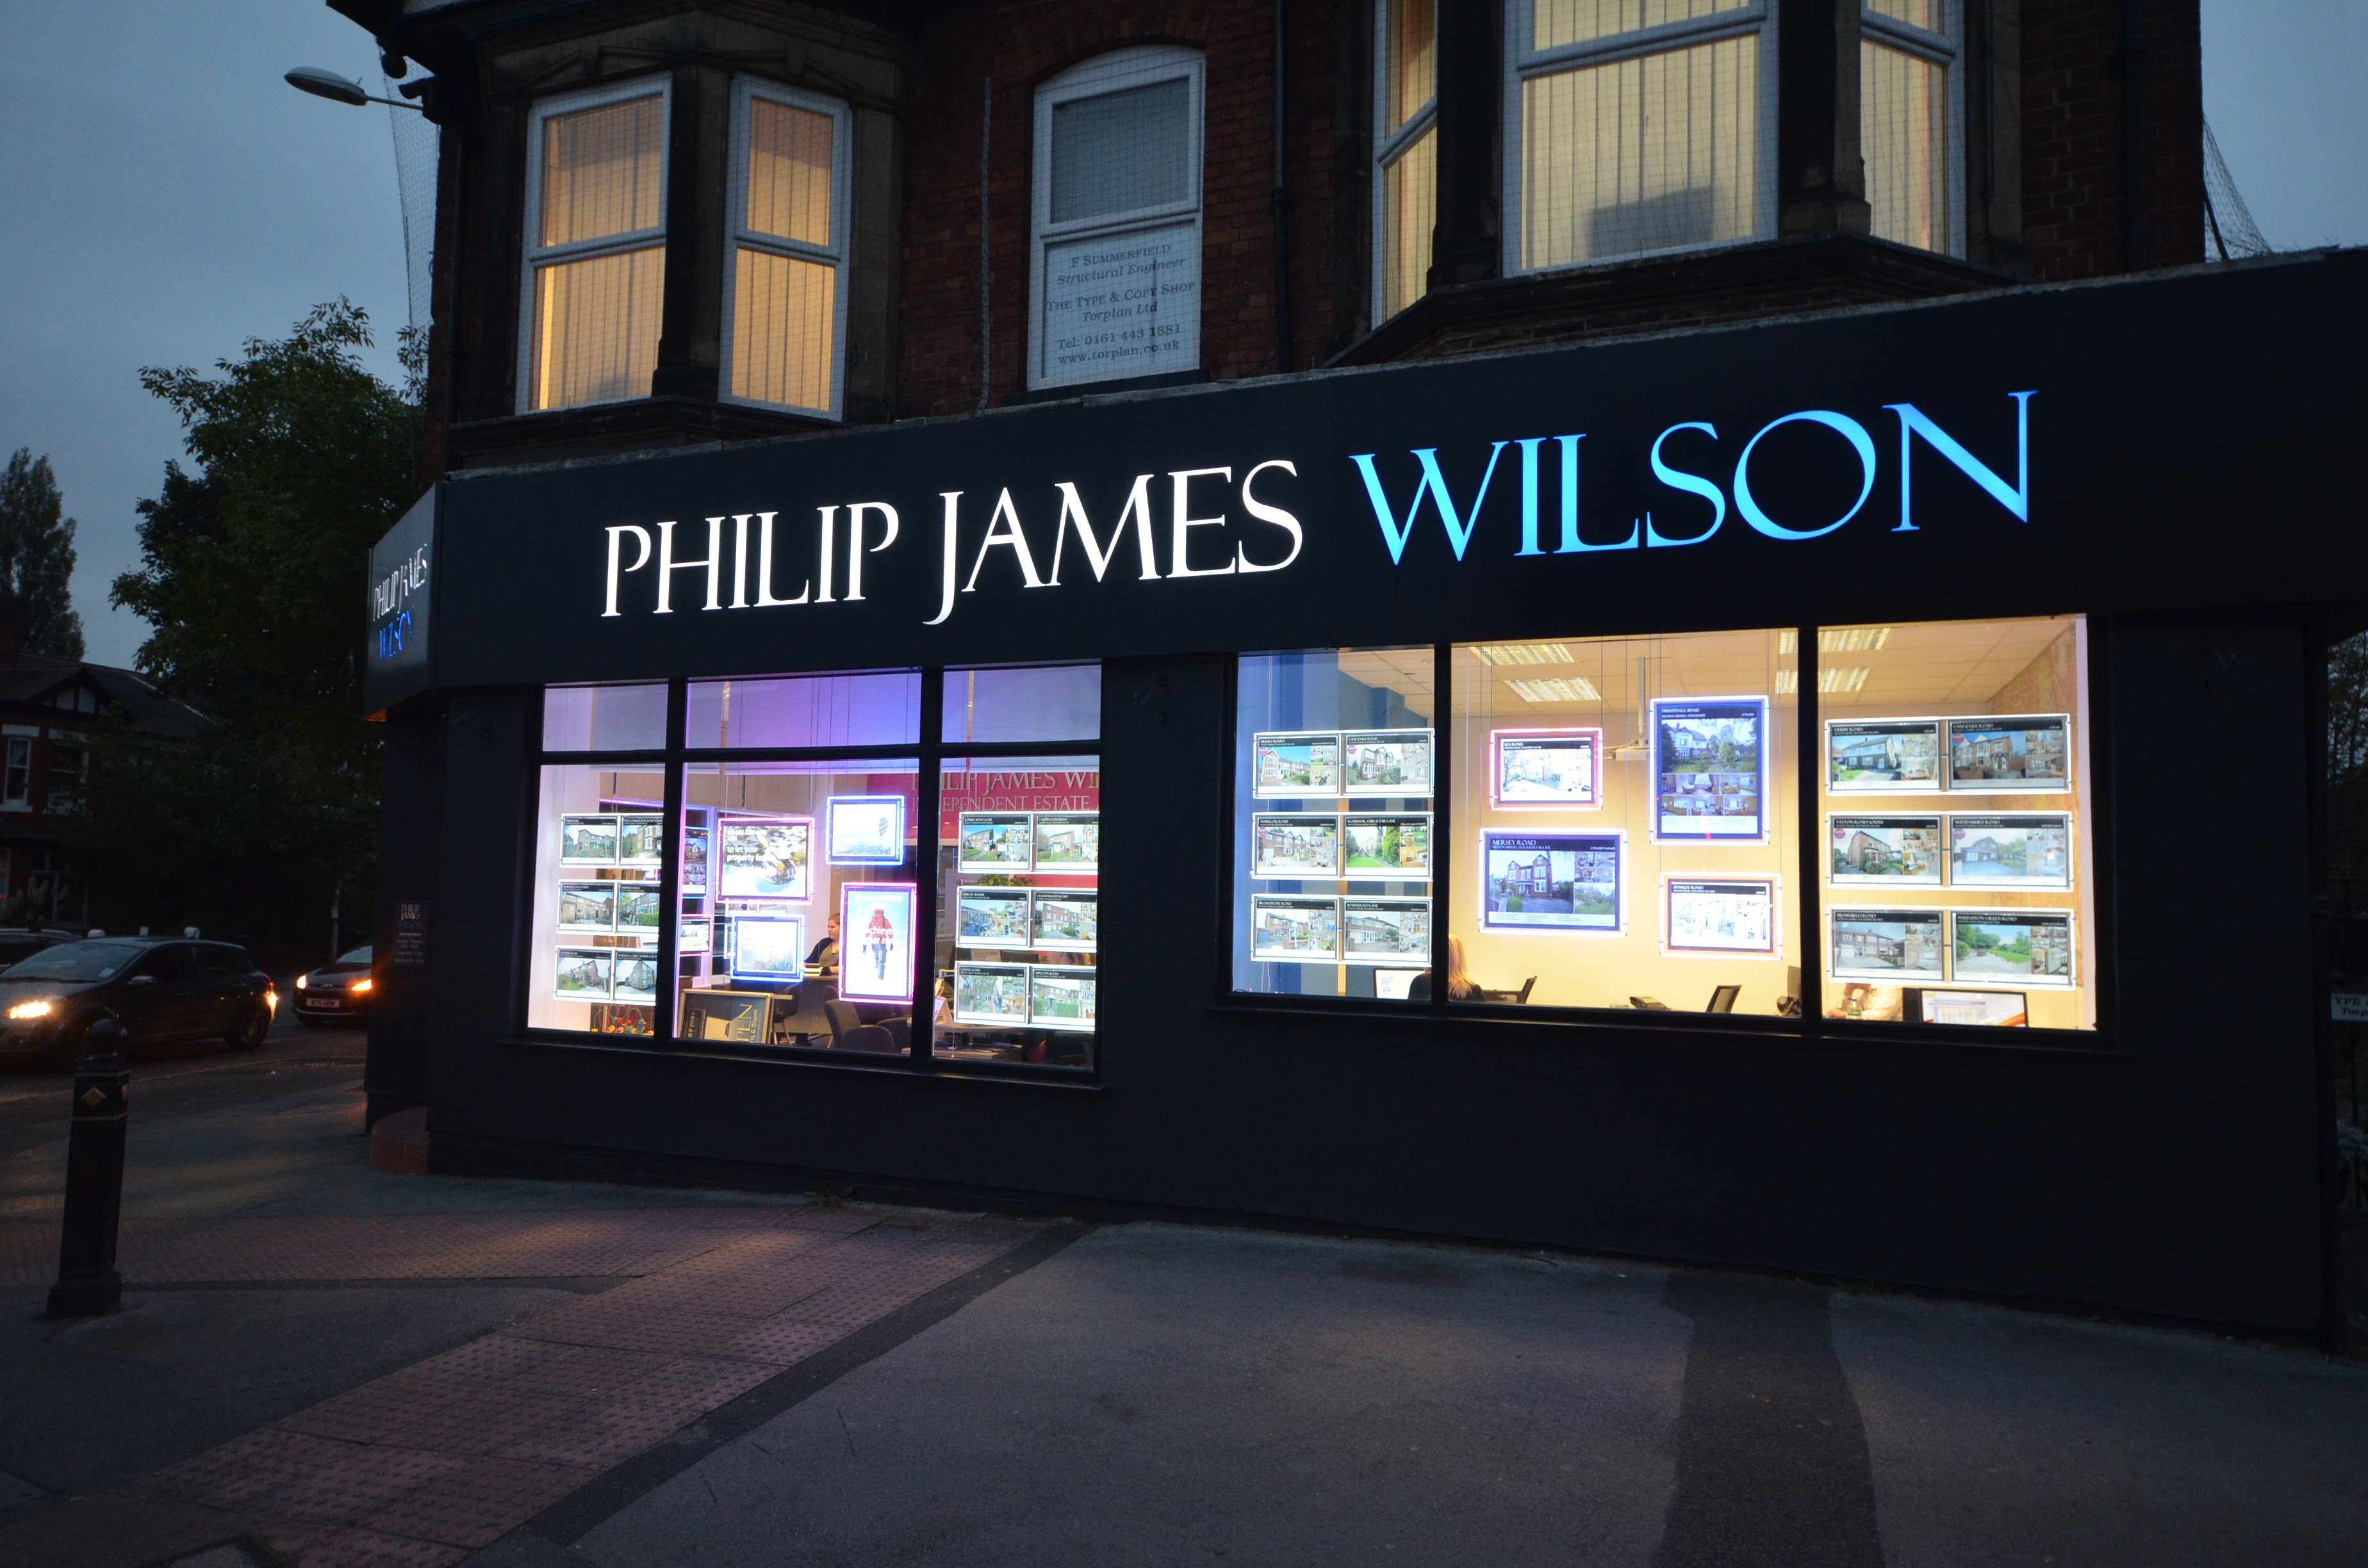 Philip James Wilson